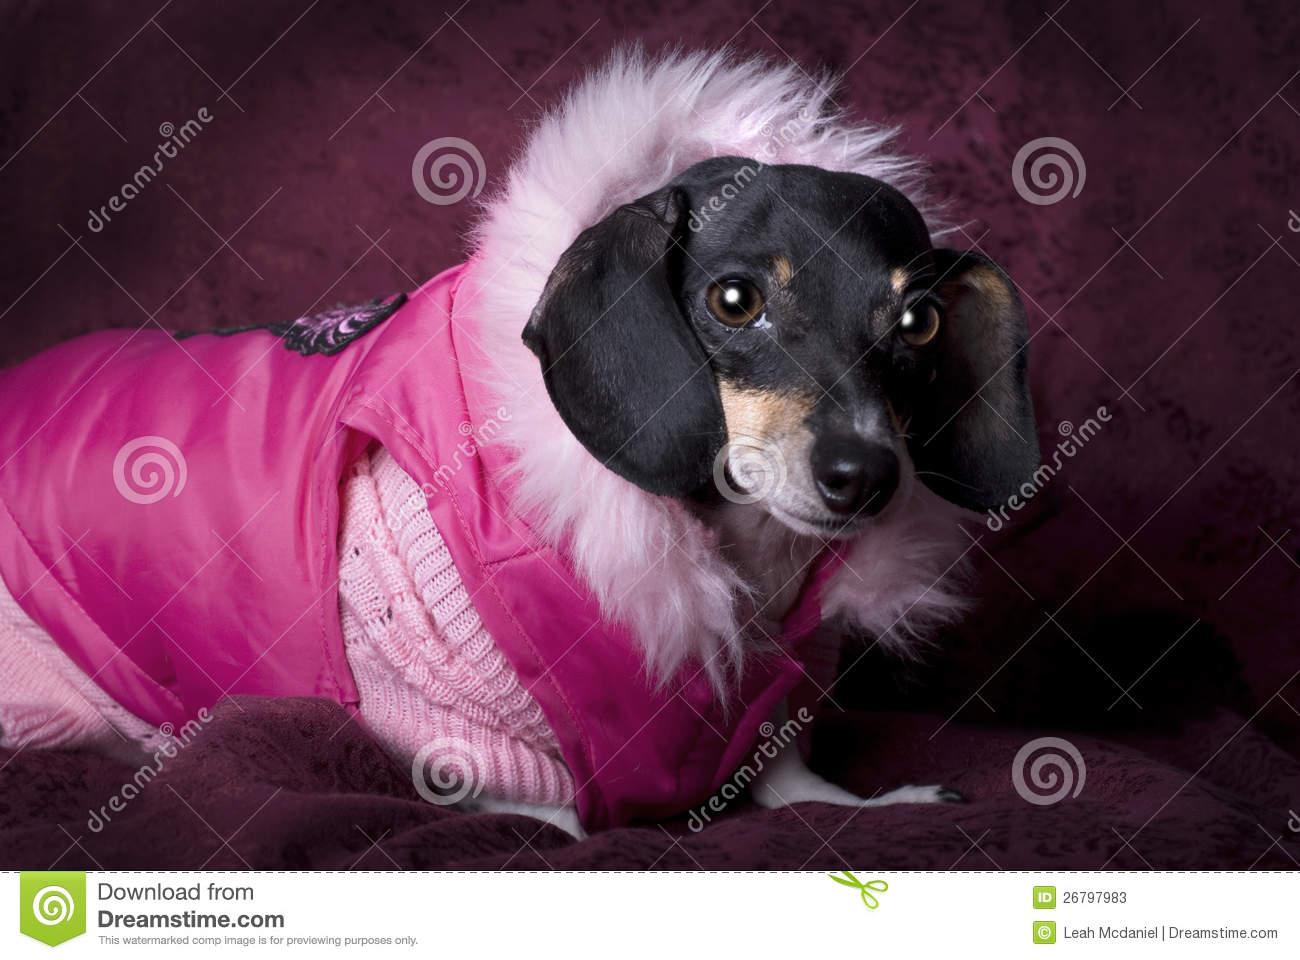 Dachshund Clothes Stock Images Download 285 Royalty Free Photos